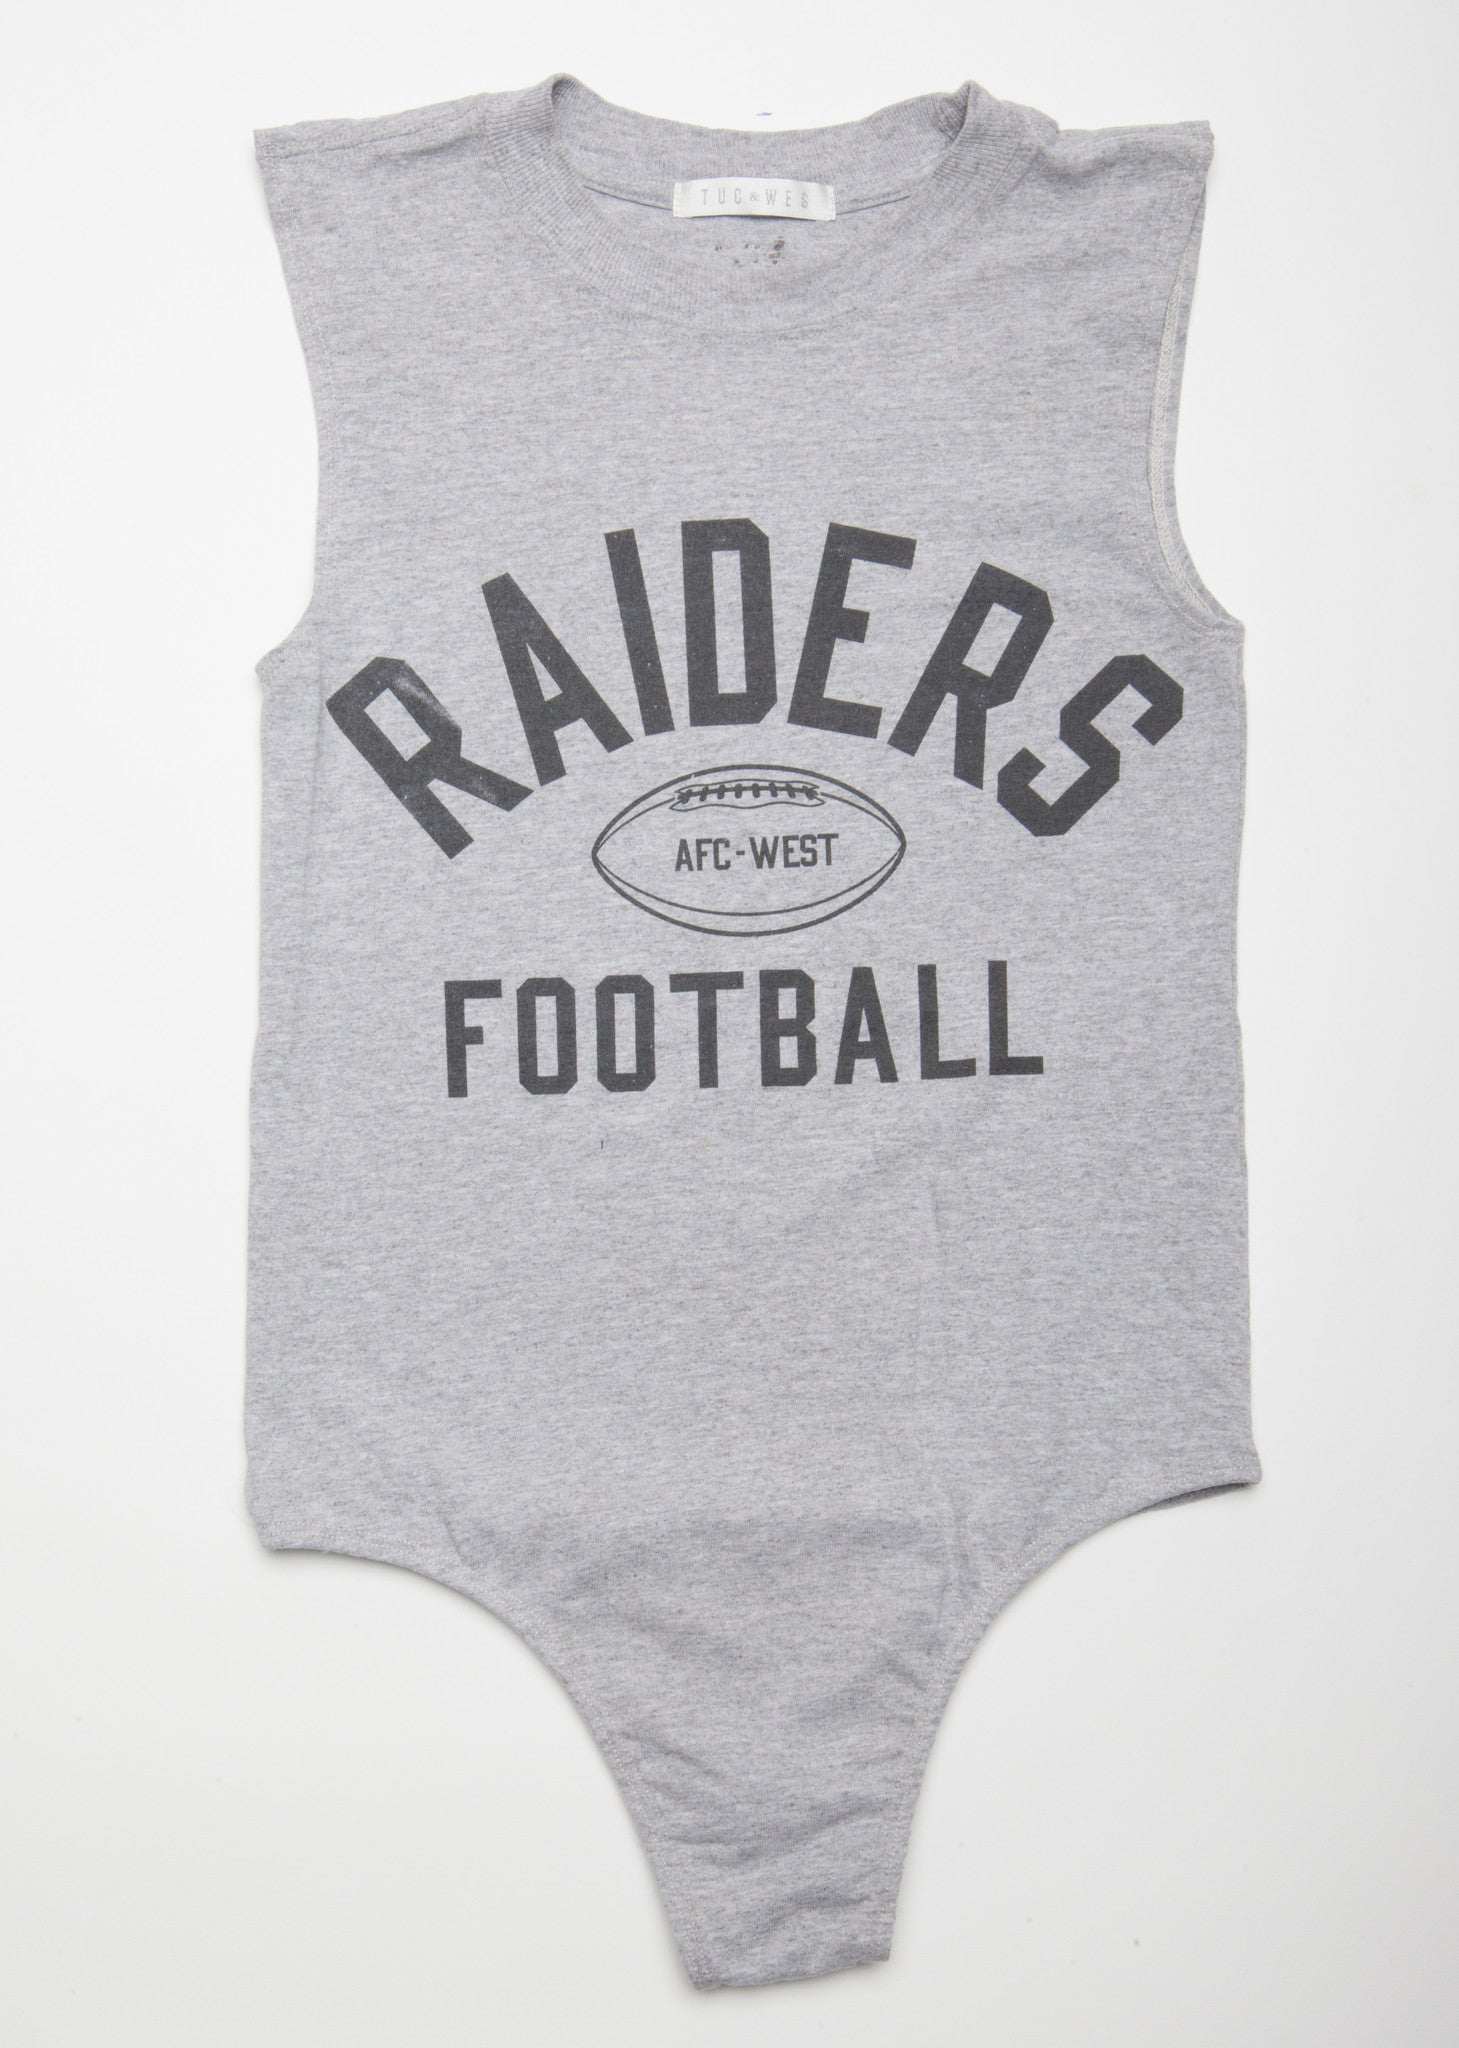 Raiders Football- S